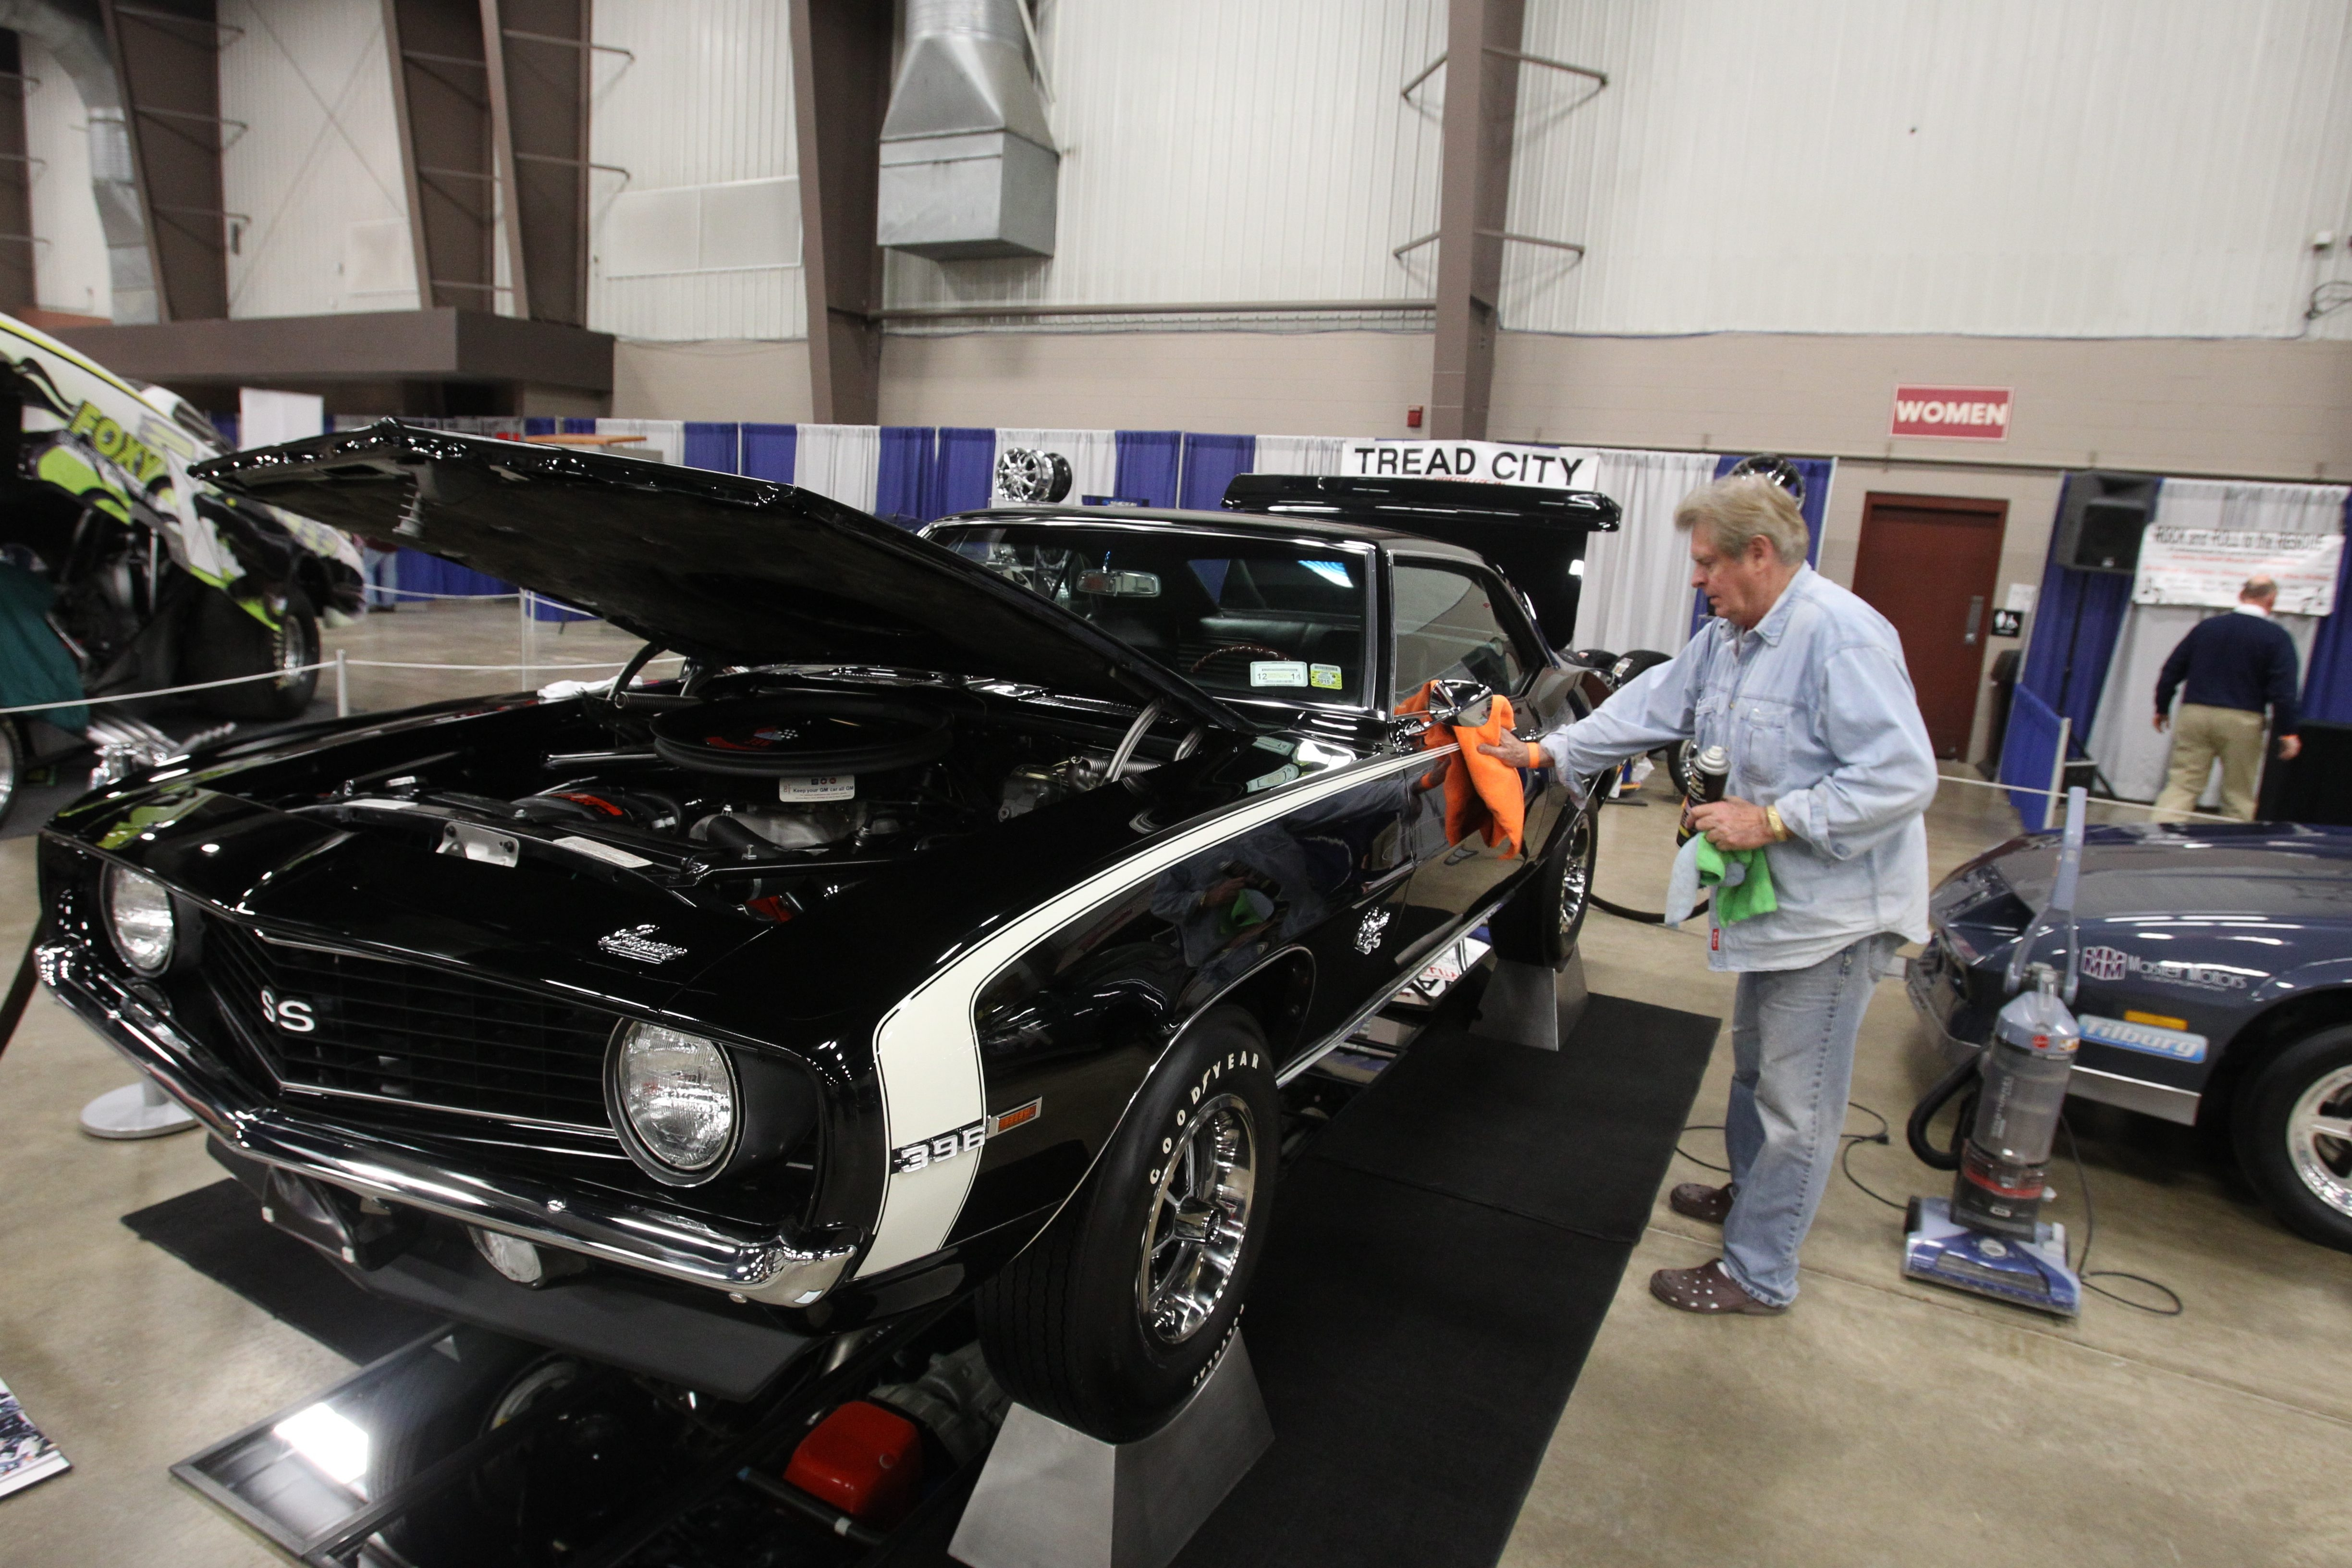 Jim Moonan, of West Seneca, cleans his 1969 Chevrolet Camaro SuperSport, which will be showcased this weekend at the Cavalcade of Cars show at the Fairgrounds  in Hamburg.